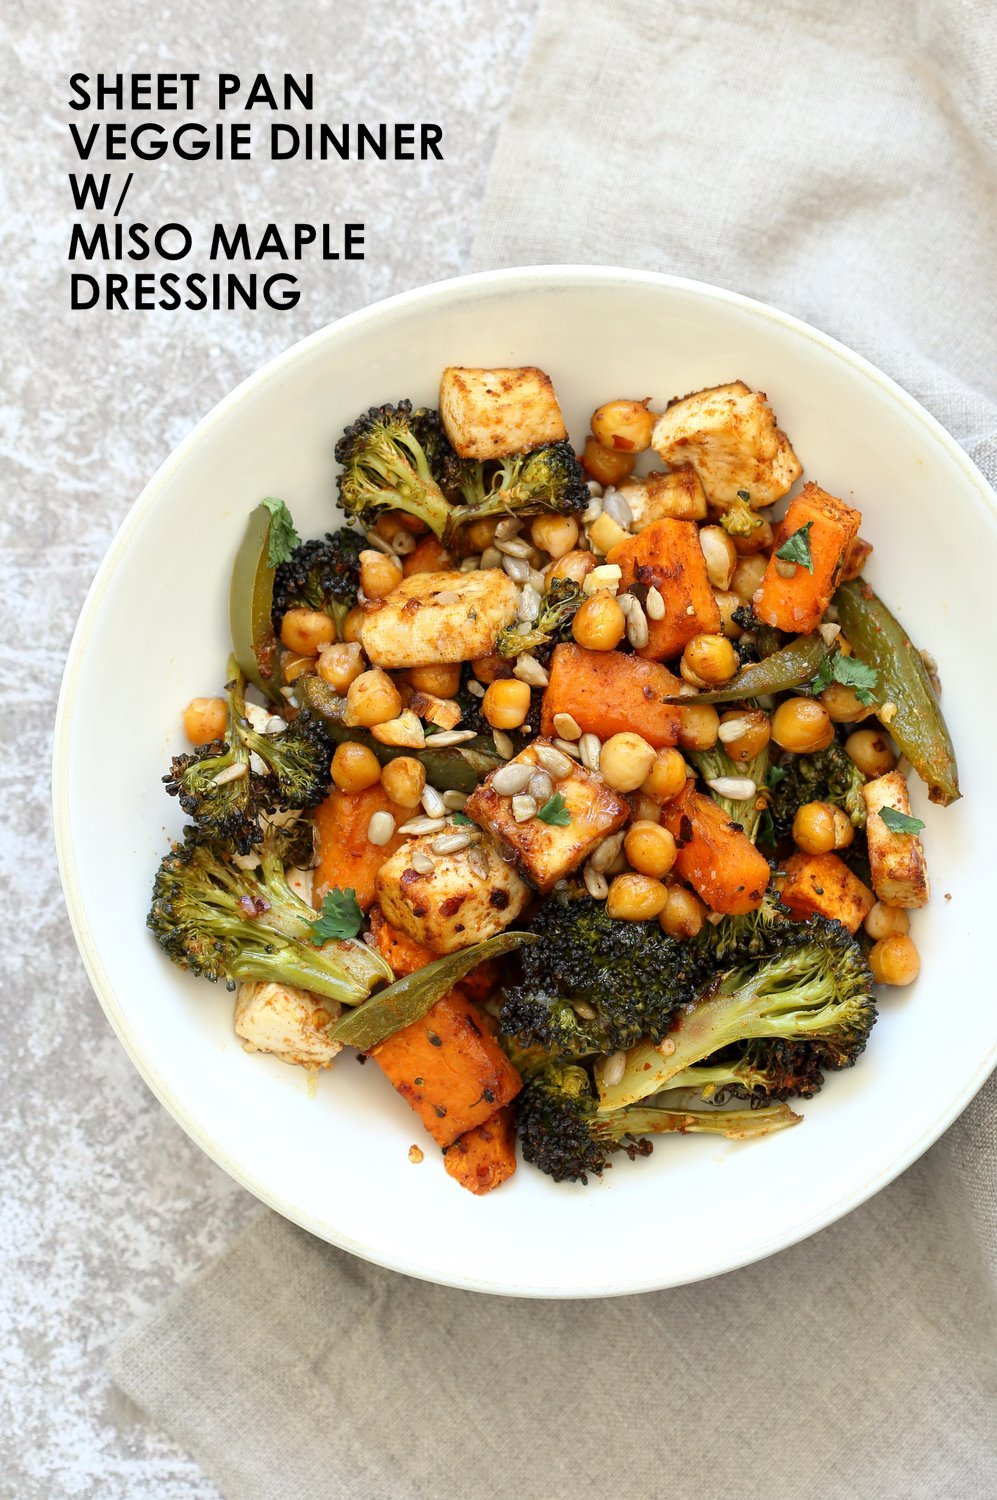 Sheet Pan Veggie Dinner with Roasted Veggies, Chickpeas, Tofu in a white Bowl over grey napkin and concrete